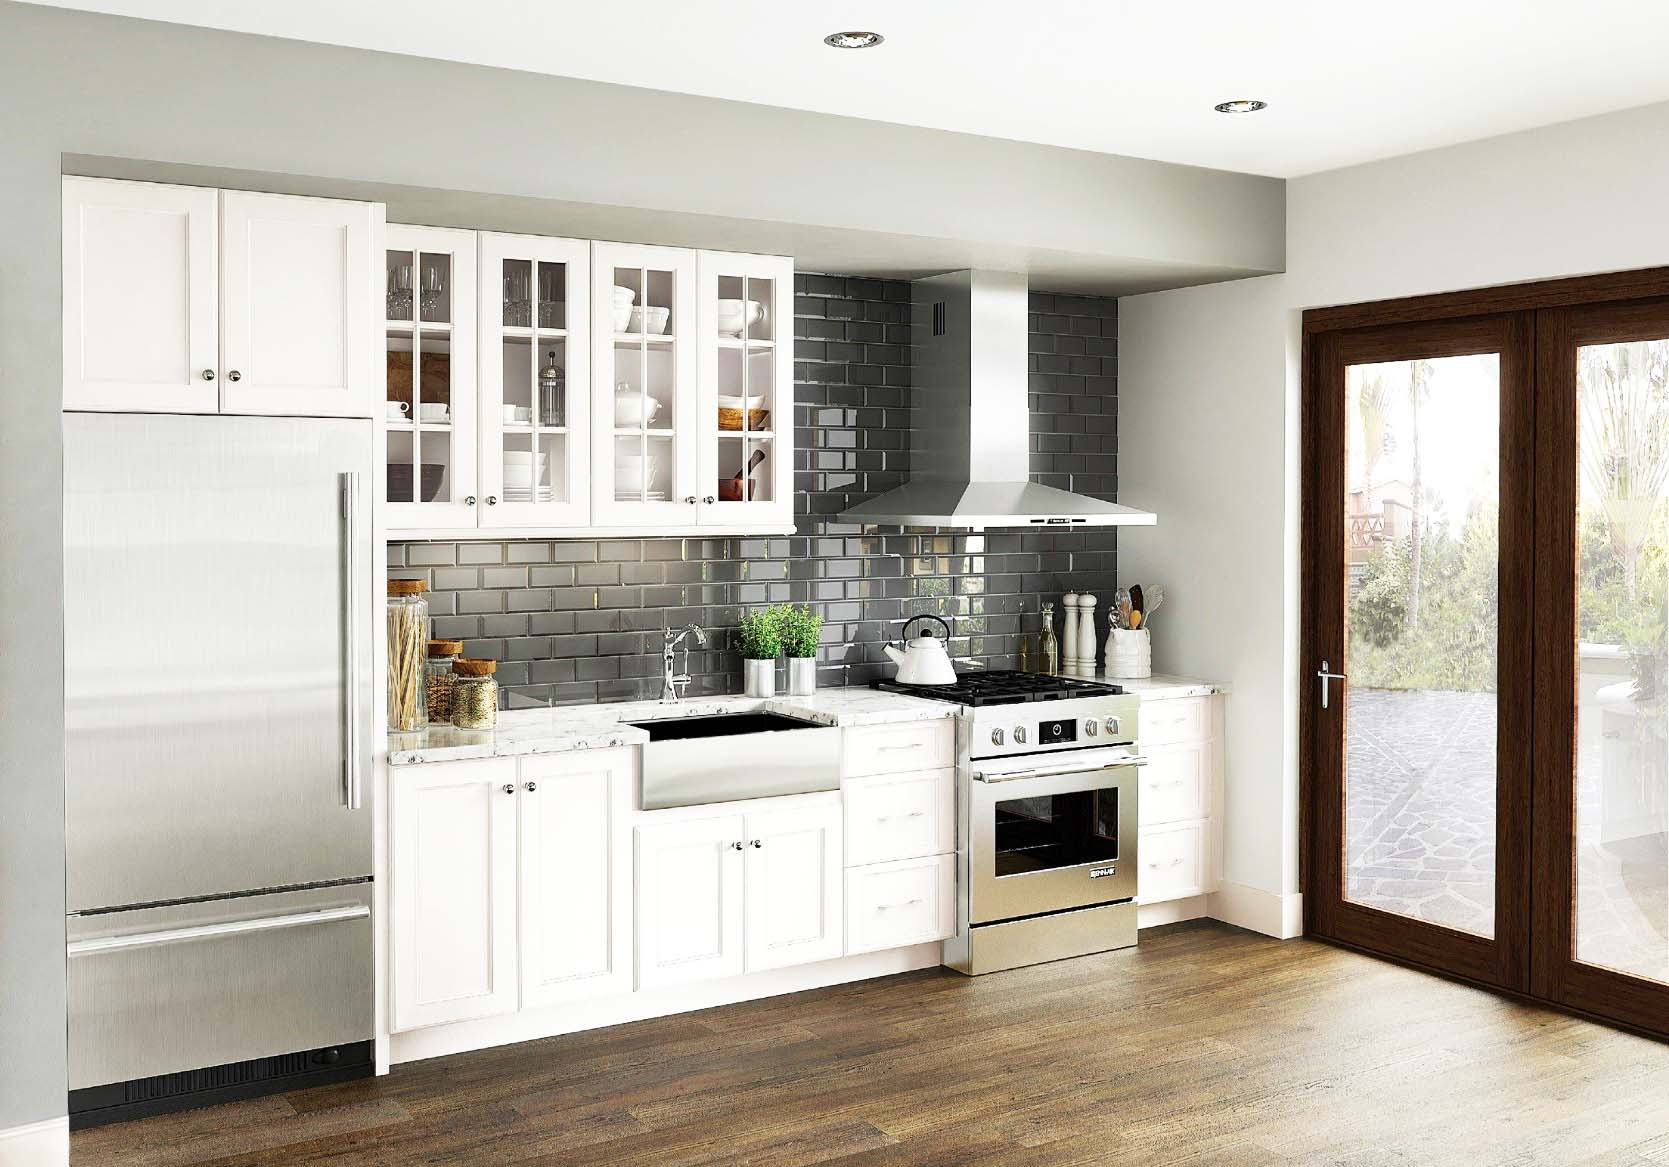 Have An Exterior Door In Your Kitchen? Make Sure Thatu0027s Glass As Well U2013  Sliding Patio Doors Can Maximize The Open Feeling And For Rooms With  Limited Floor ...